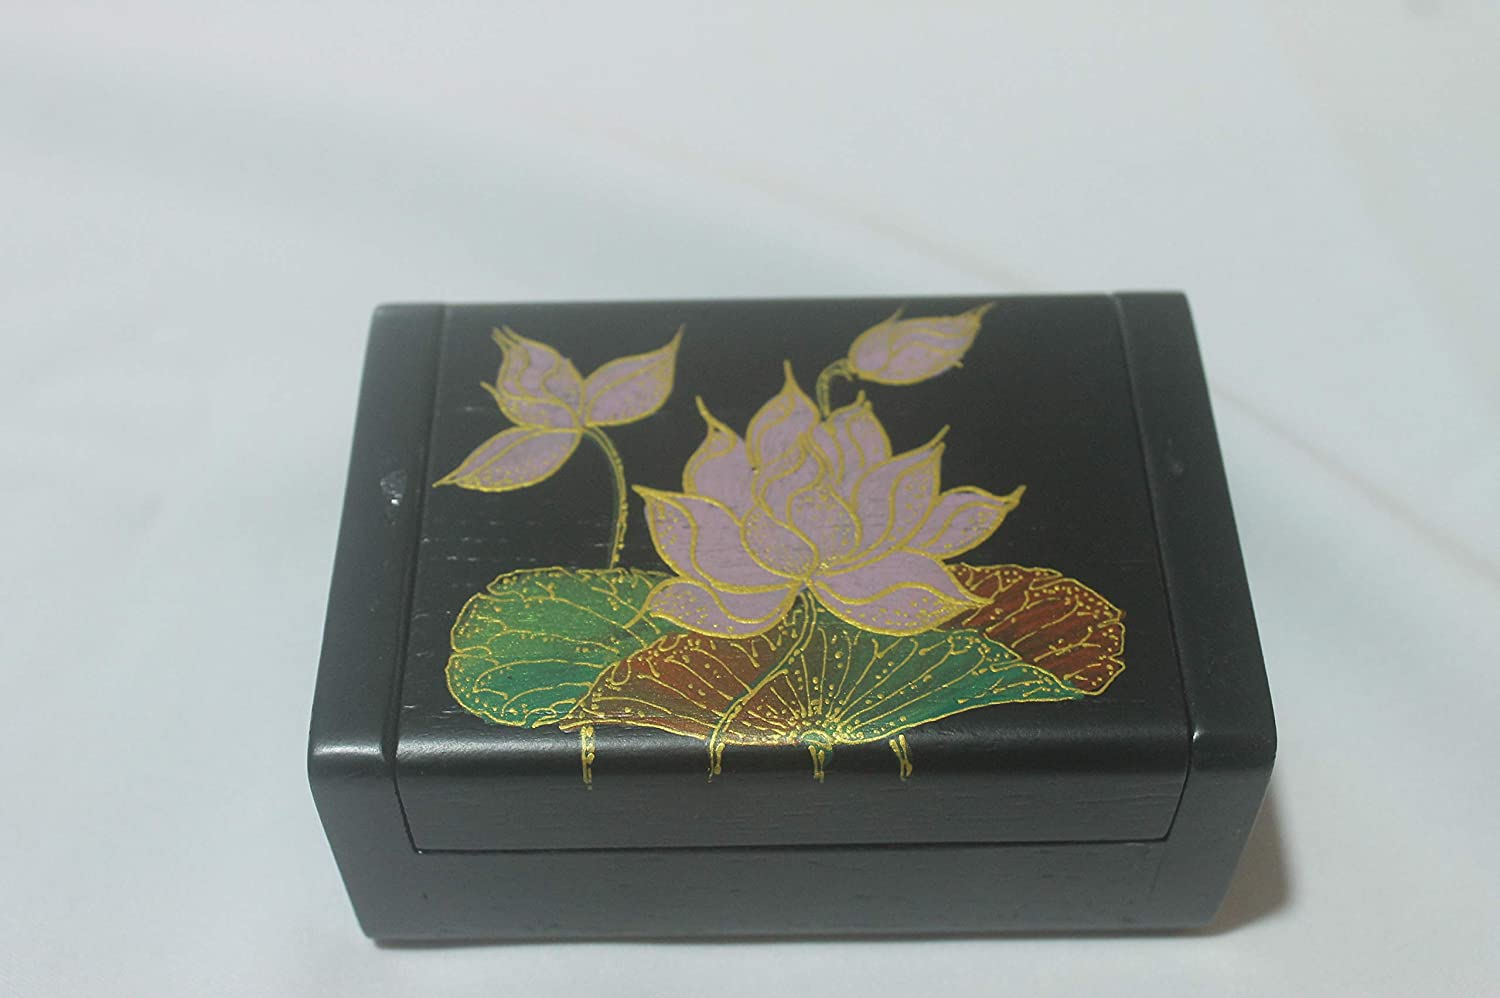 Thai Teak Exporters Hand Painted Boxes Jewelry Omaha Mall Natural - Ha New products world's highest quality popular